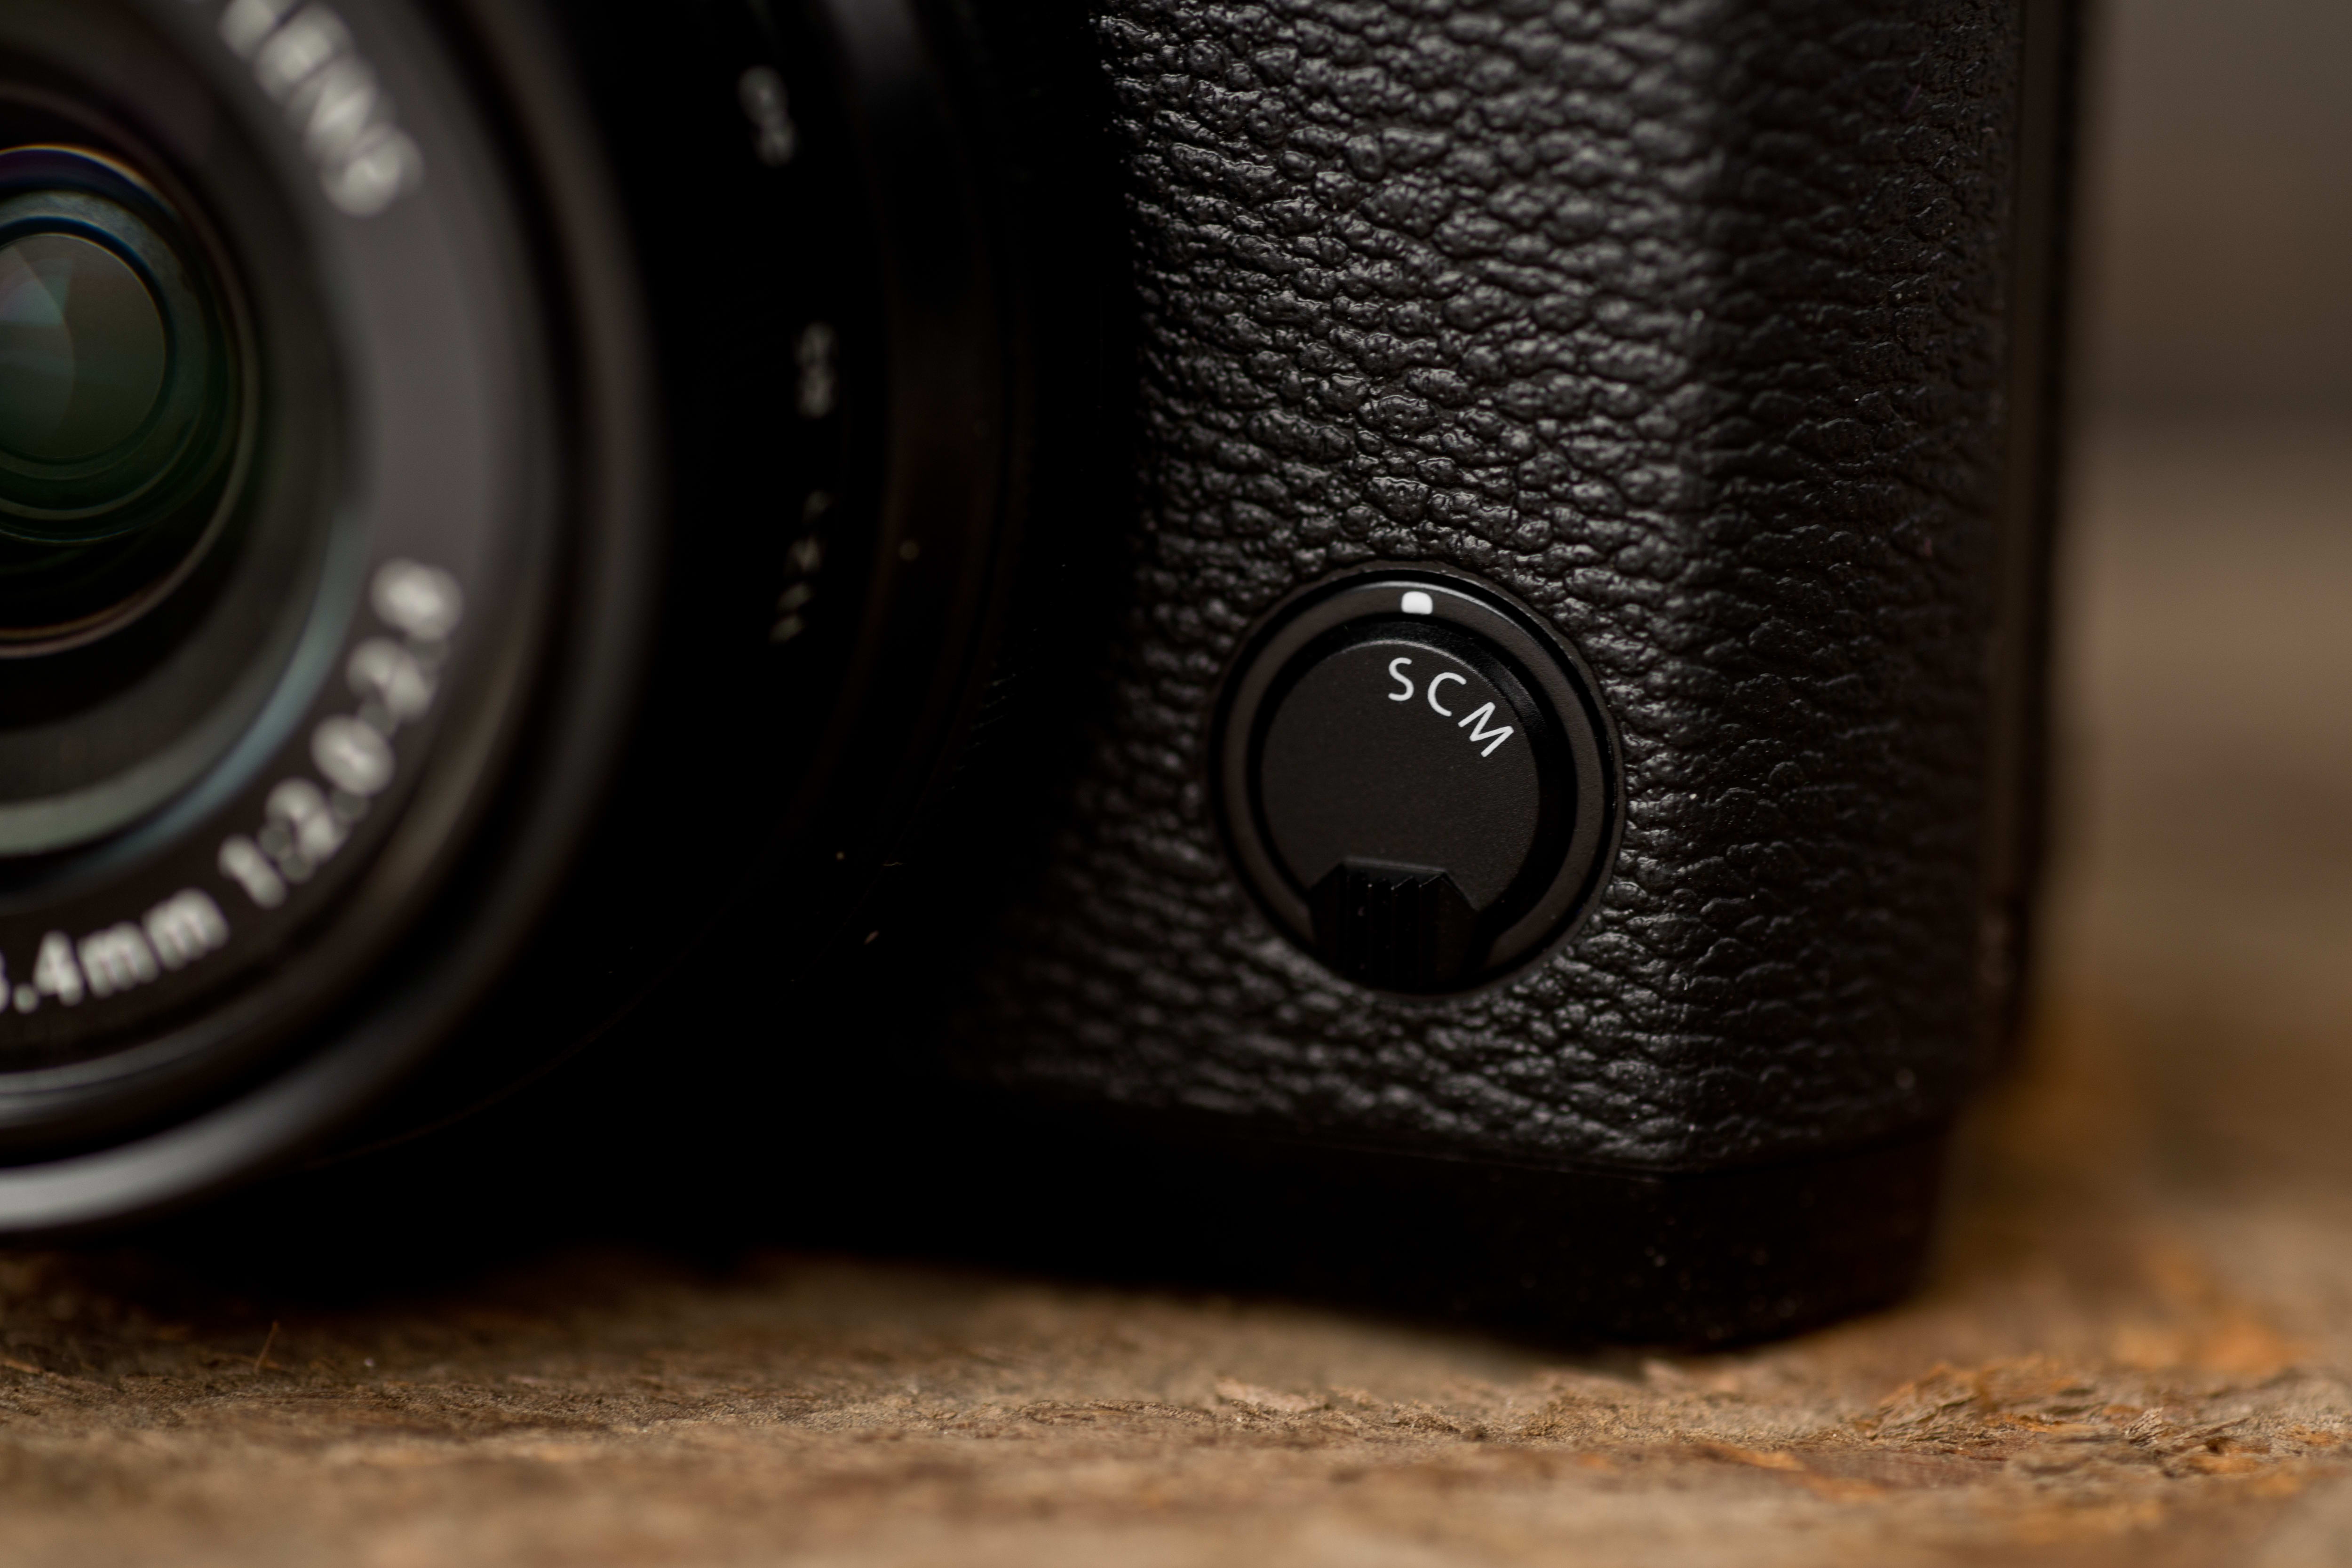 A photo of the Fujifilm X30's focus switch.